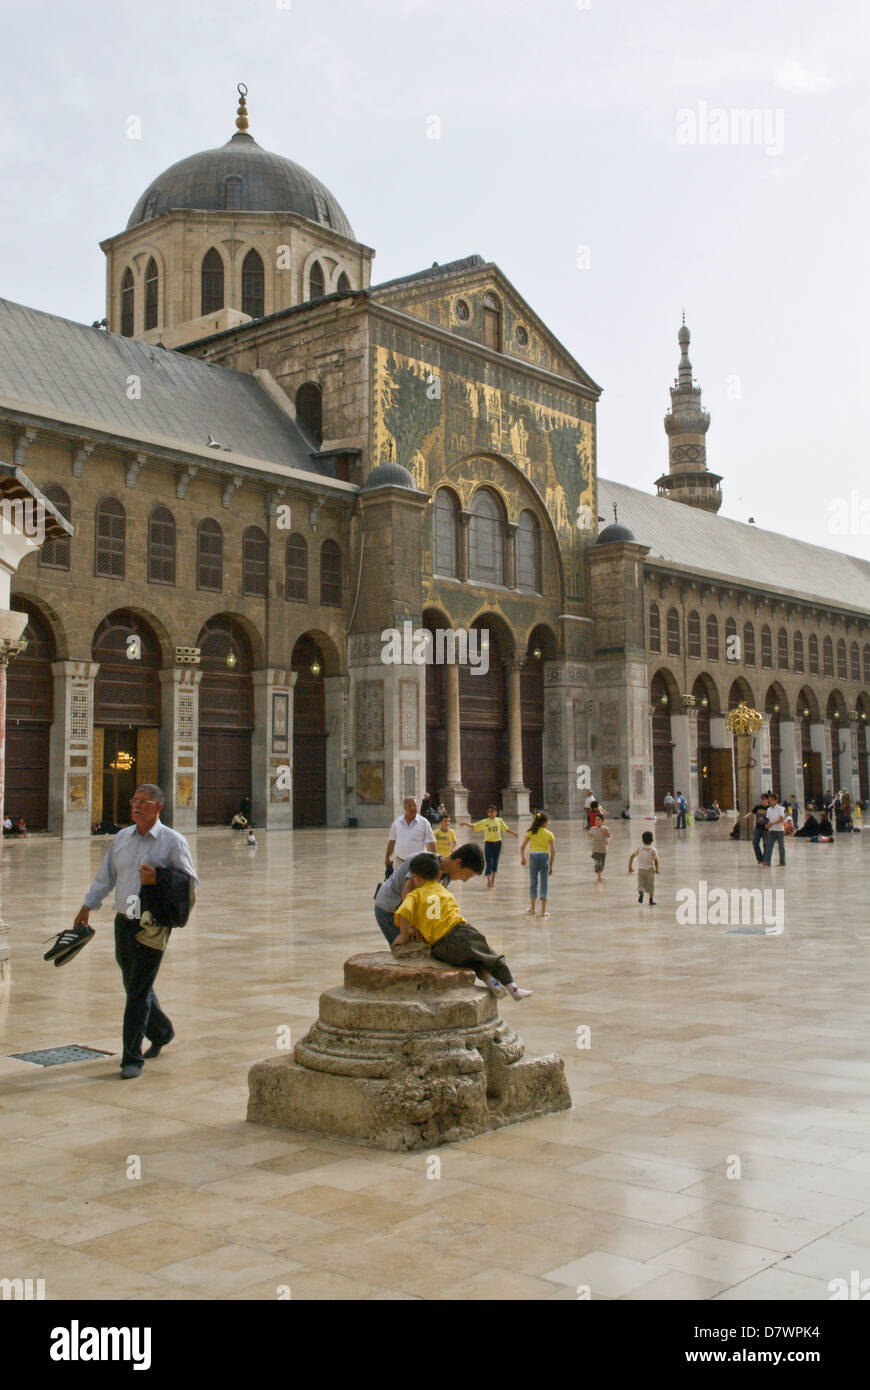 Damascus, Syria. Syrian families in the courtyard of The Great Umayyad Mosque, an early Islamic monument built in - Stock Image